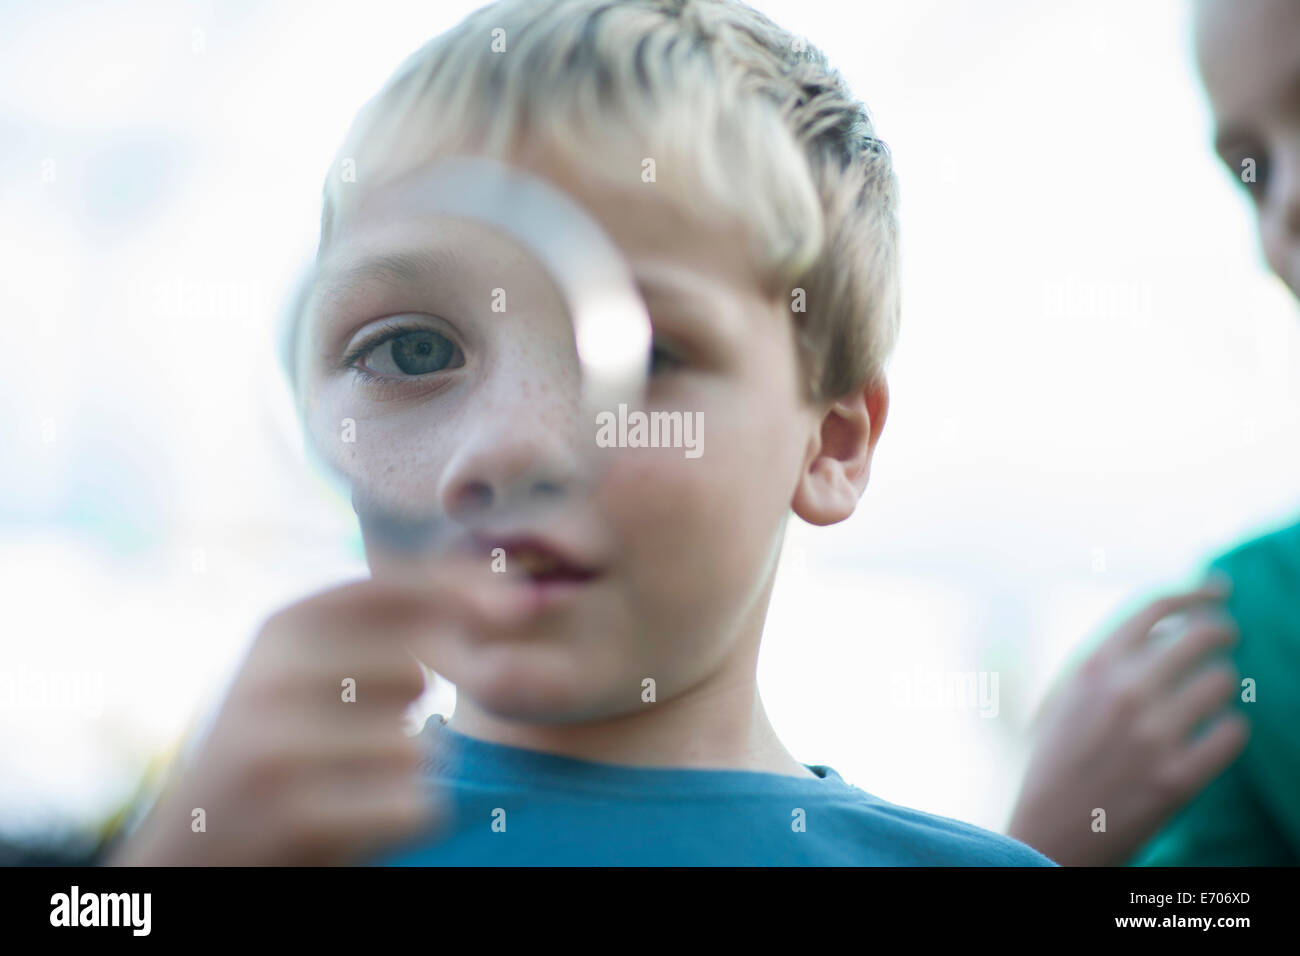 Portrait of boy holding magnifying glass in front of eye - Stock Image